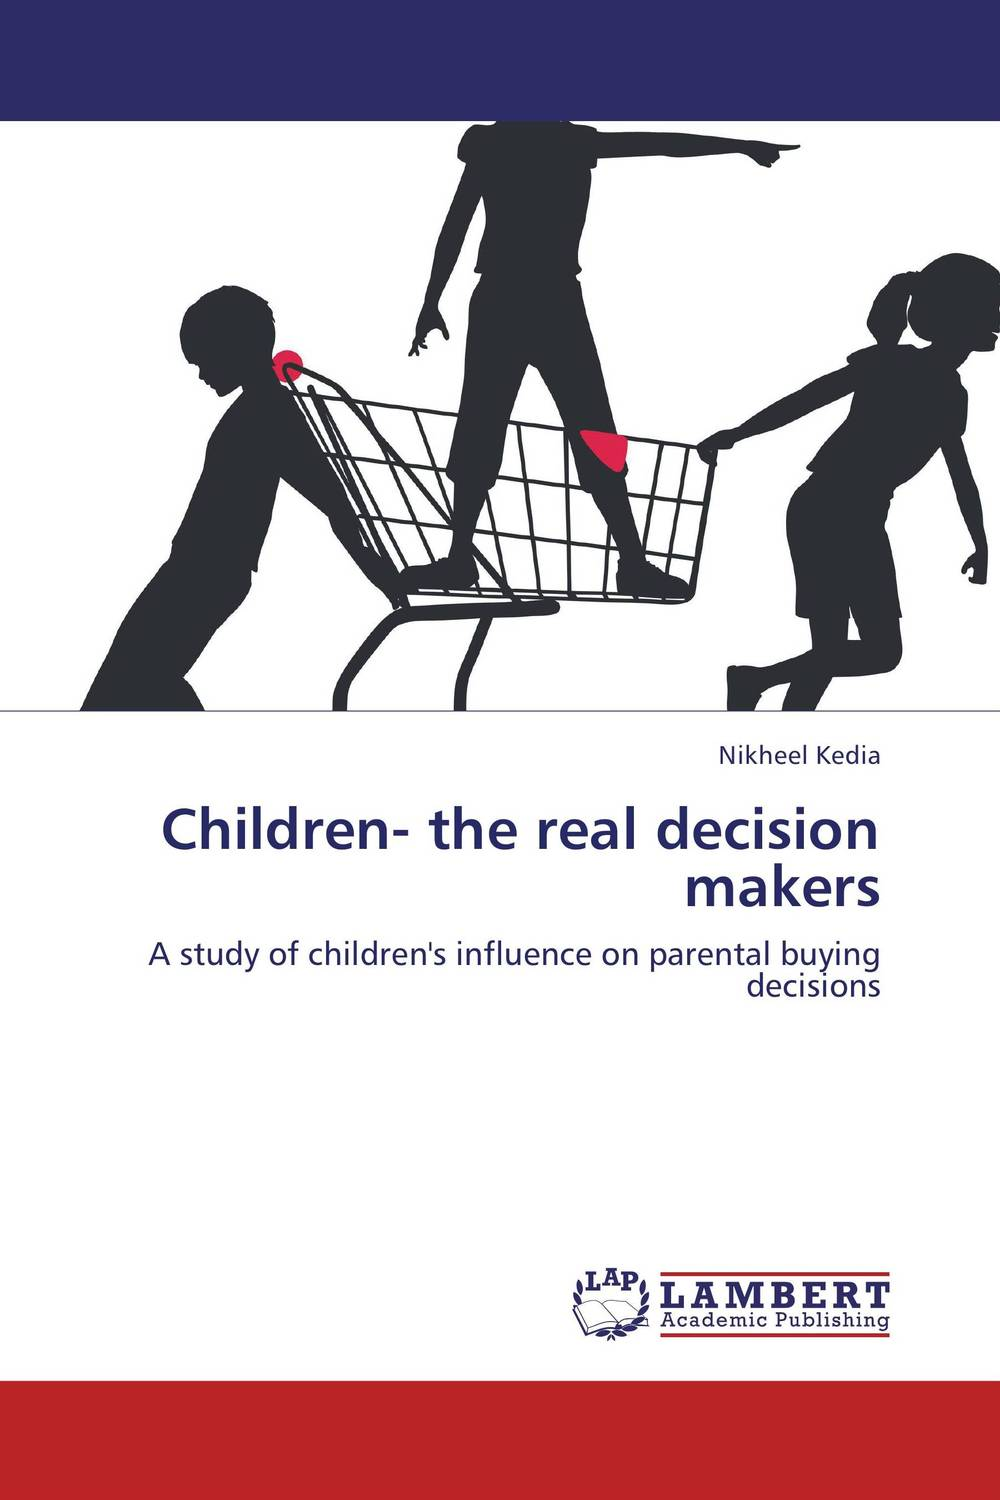 Children- the real decision makers